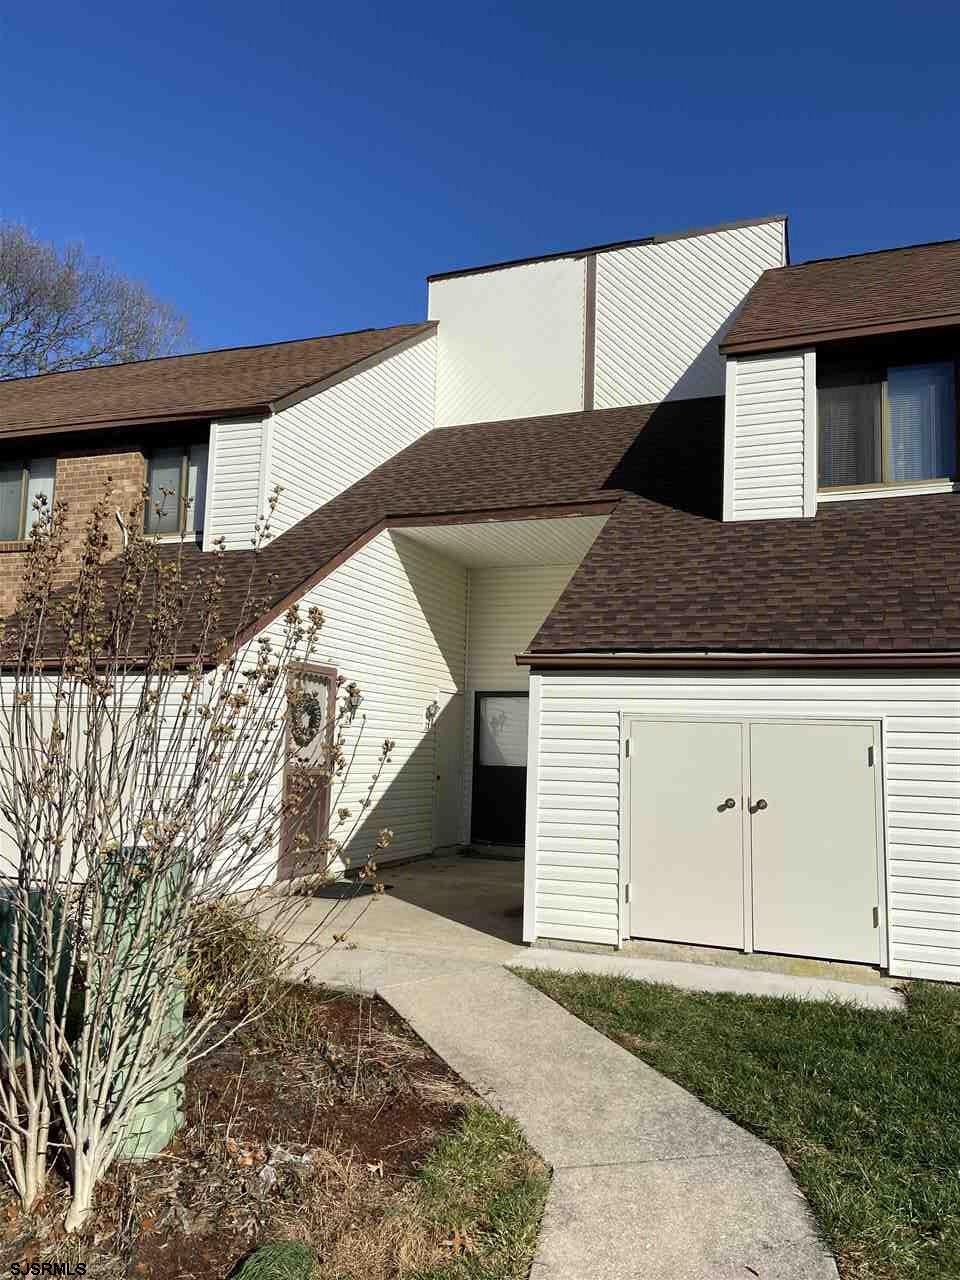 1st floor unit in Country place!!! Check out these recent upgrades: newer natural gas forced air heat / furnace, newer central air, flooring, updated kitchen and appliances, washer/dryer & upgraded bathroom. This is a beautiful condo in Country Place!